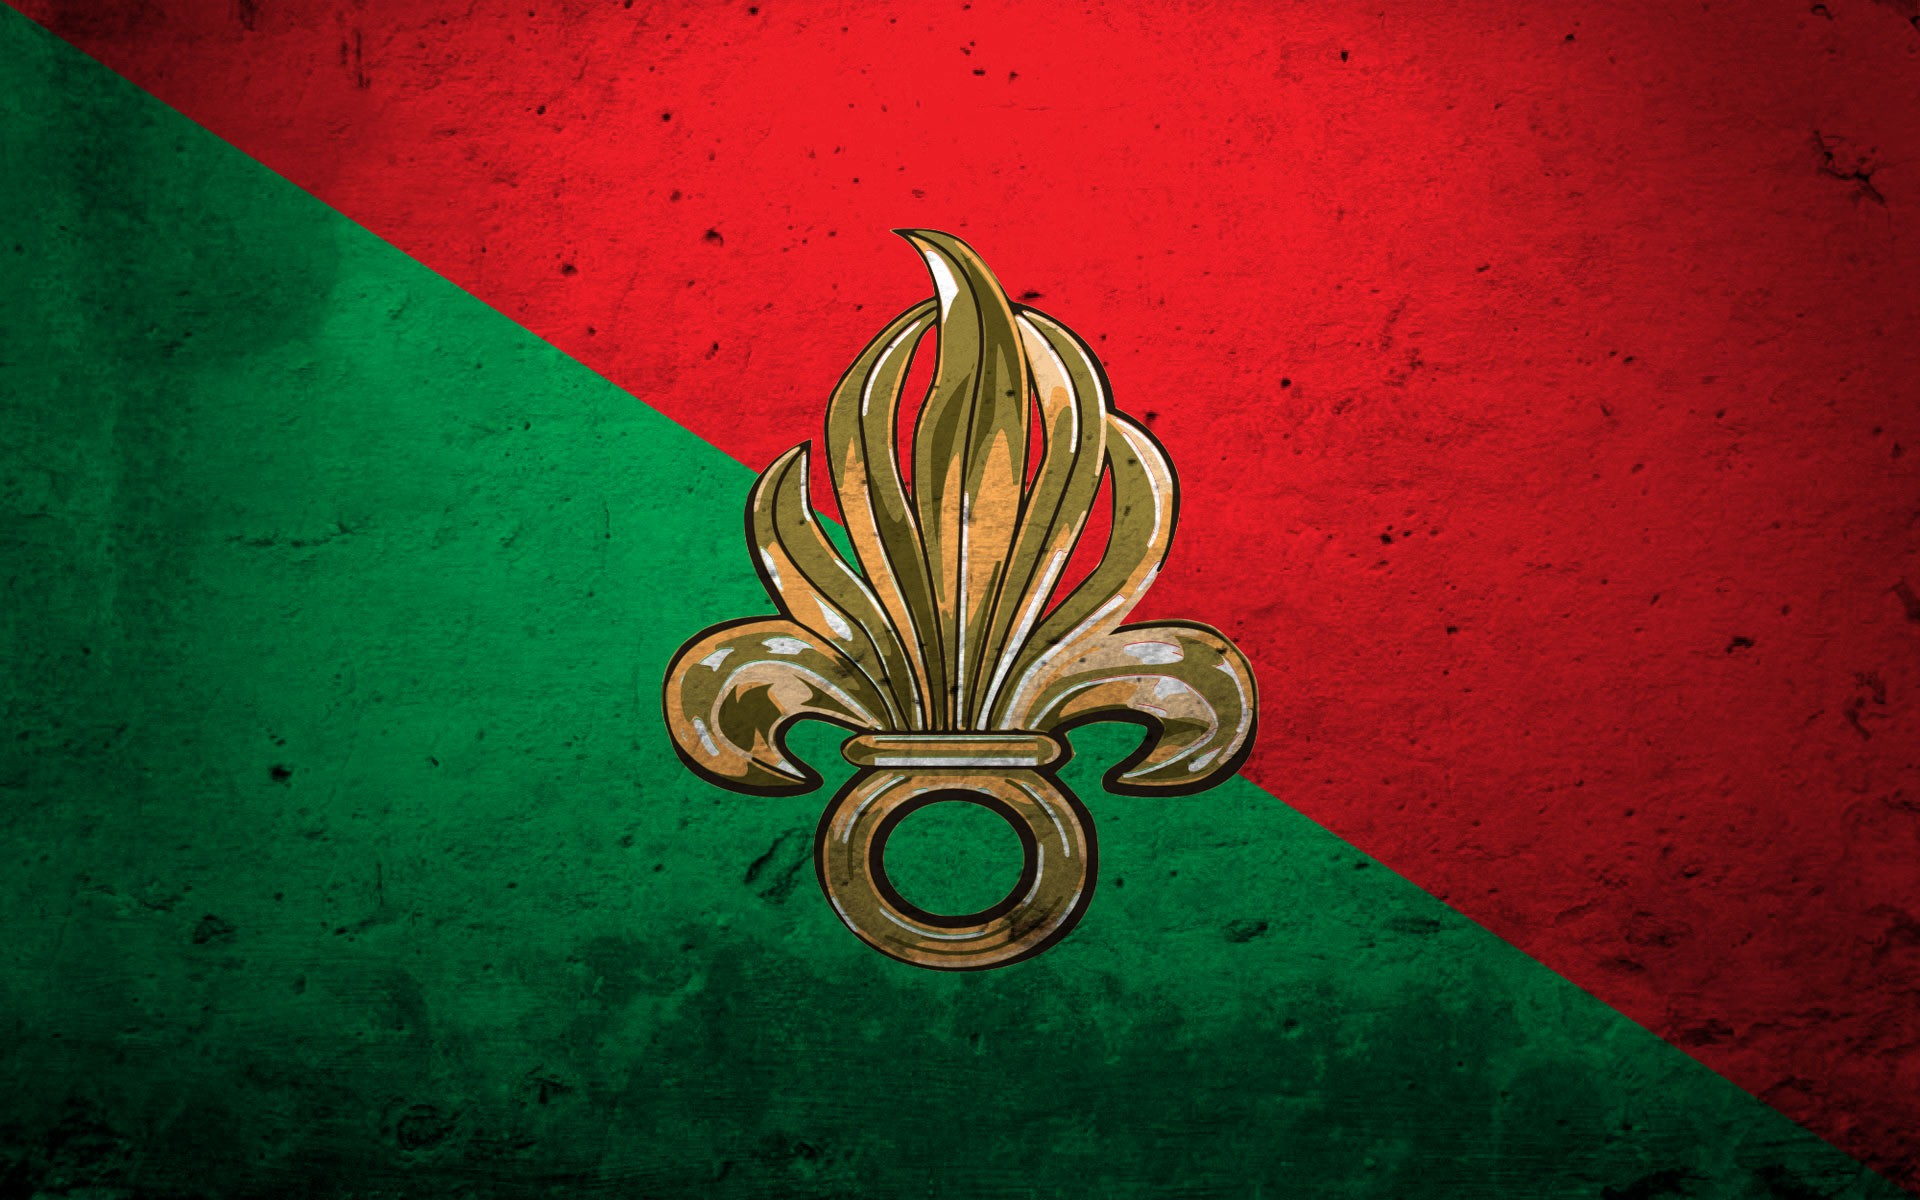 legion french french foreign legion wallpaper | 1920x1200 | 60492